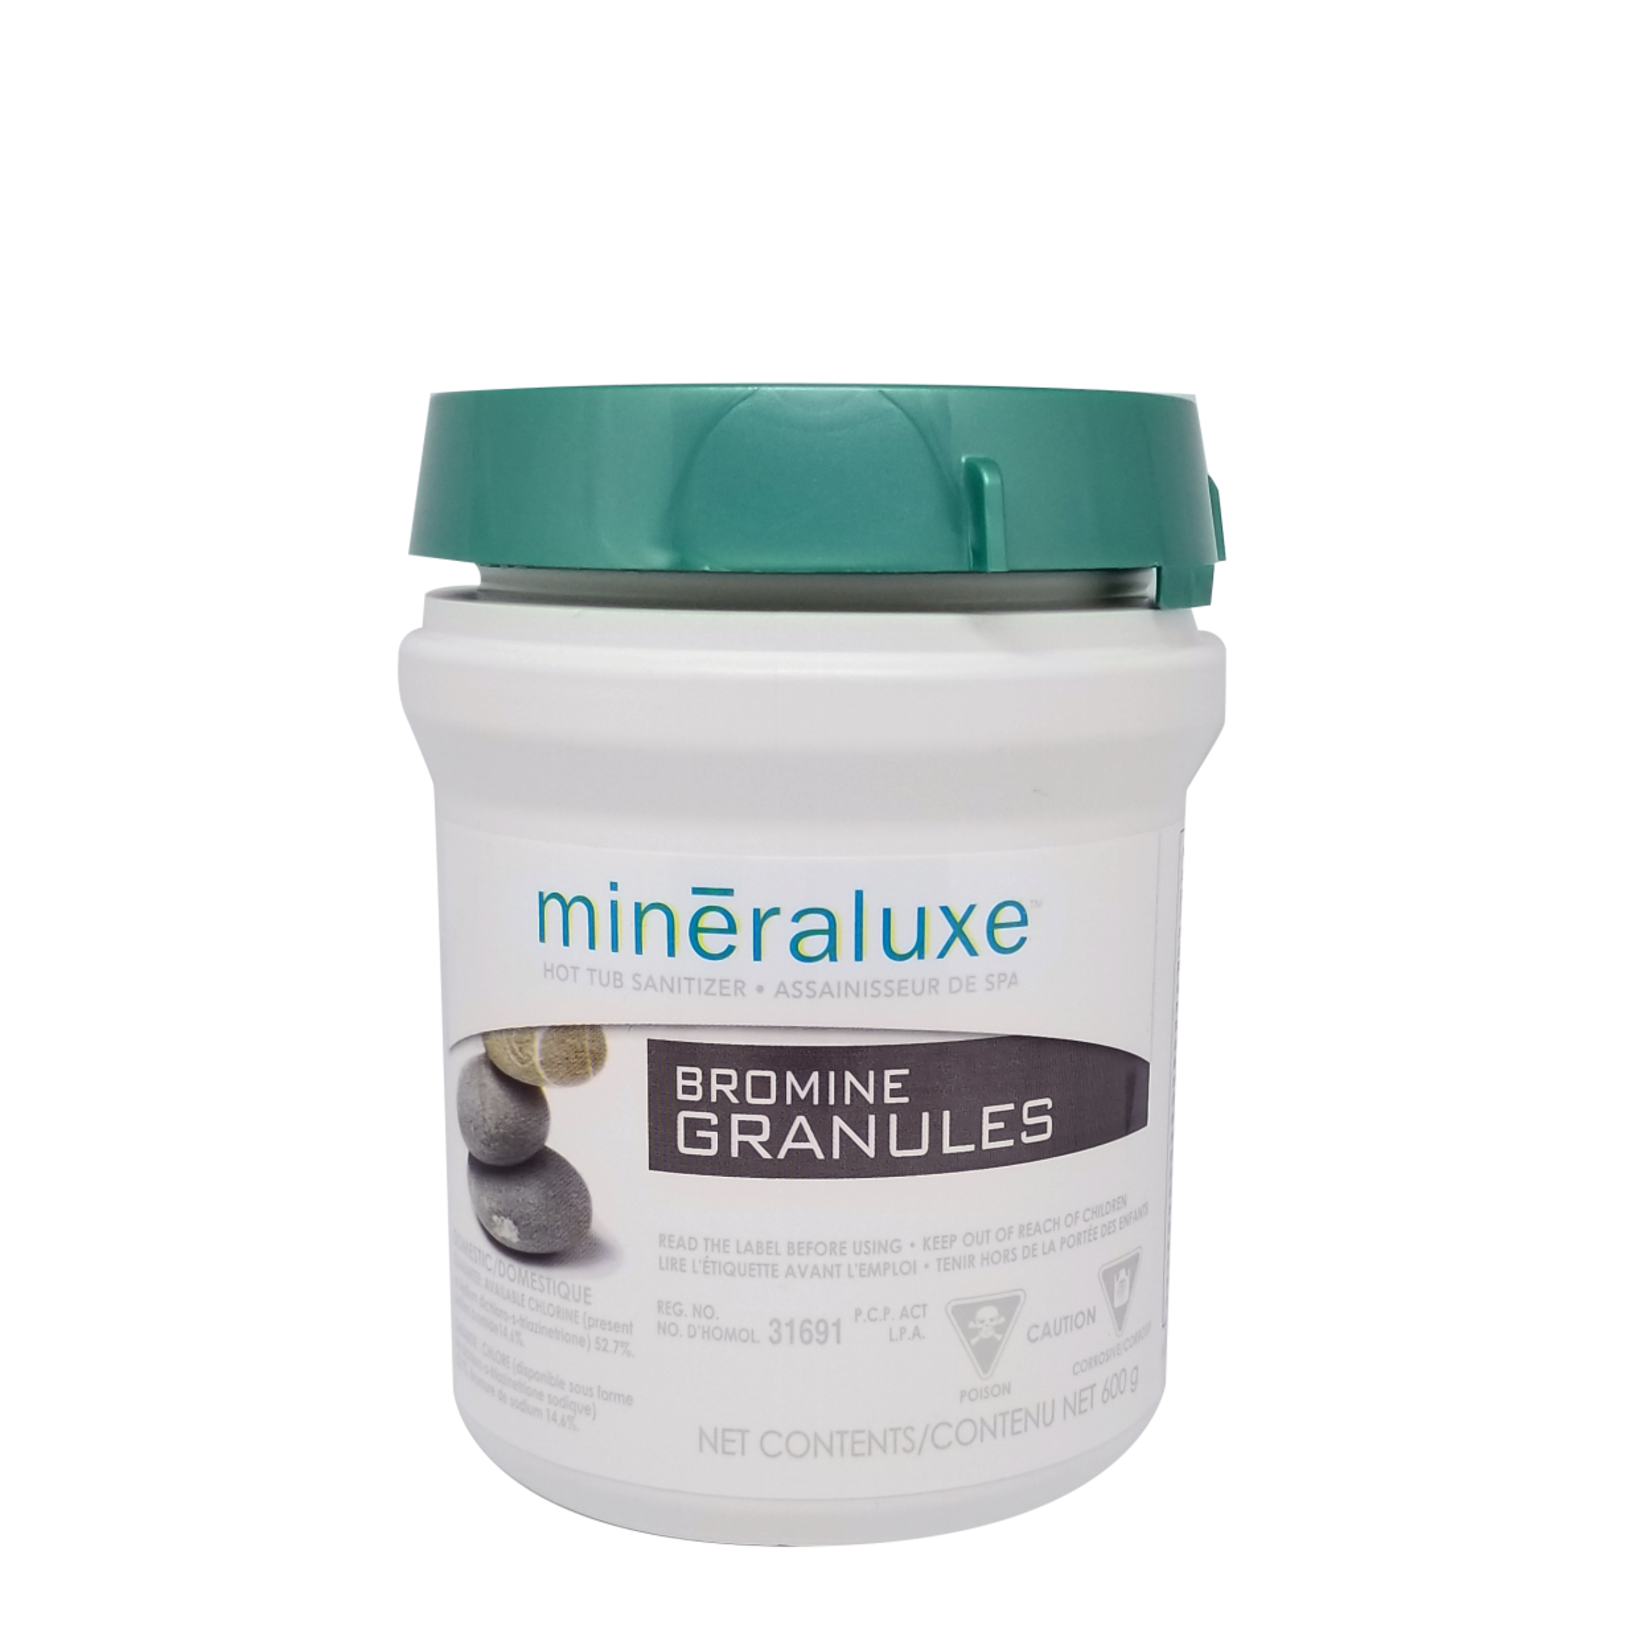 Mineraluxe Bromine Granules (600 g)